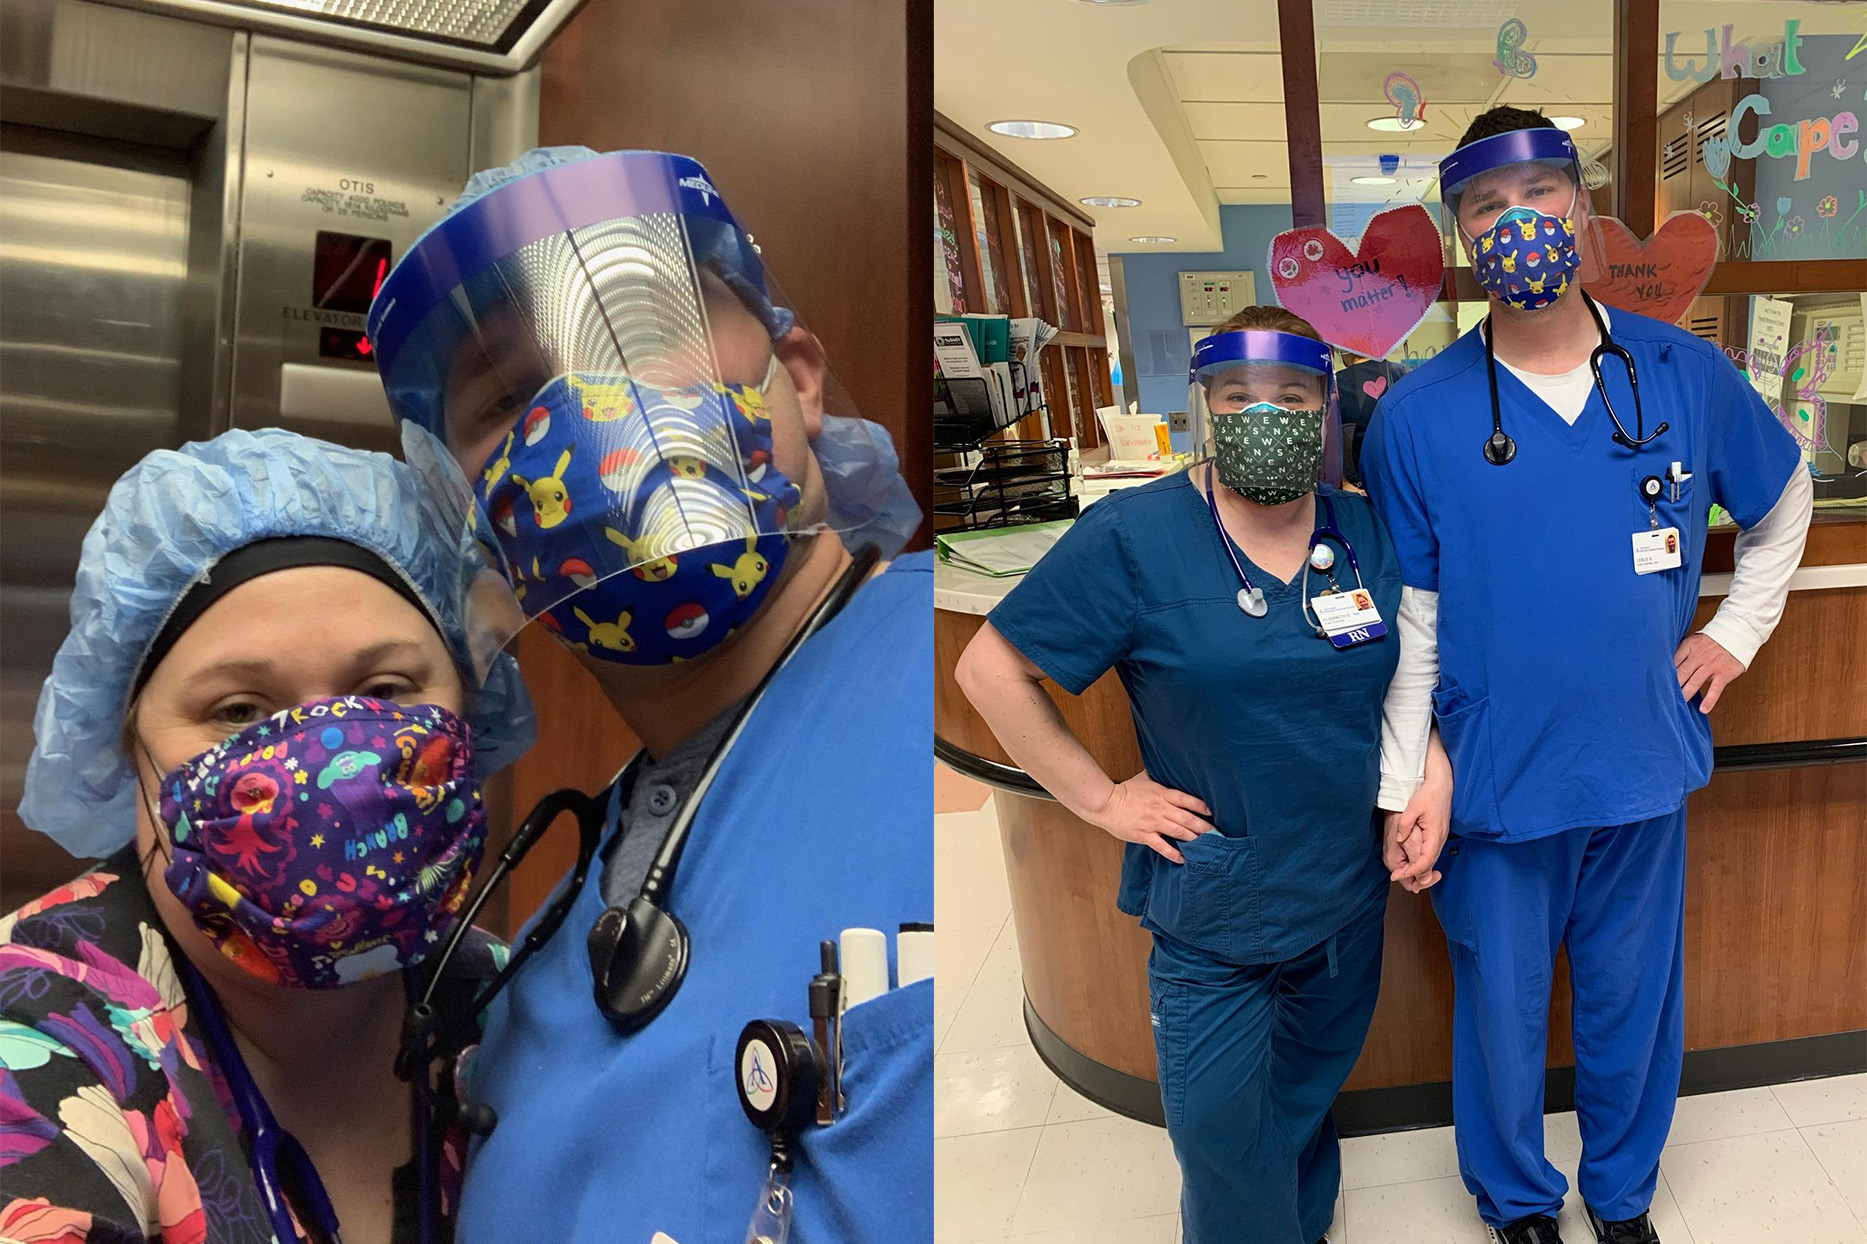 Two photos of Leslie and Elizabeth Stewart posing in nursing scrubs while working at a hospital.